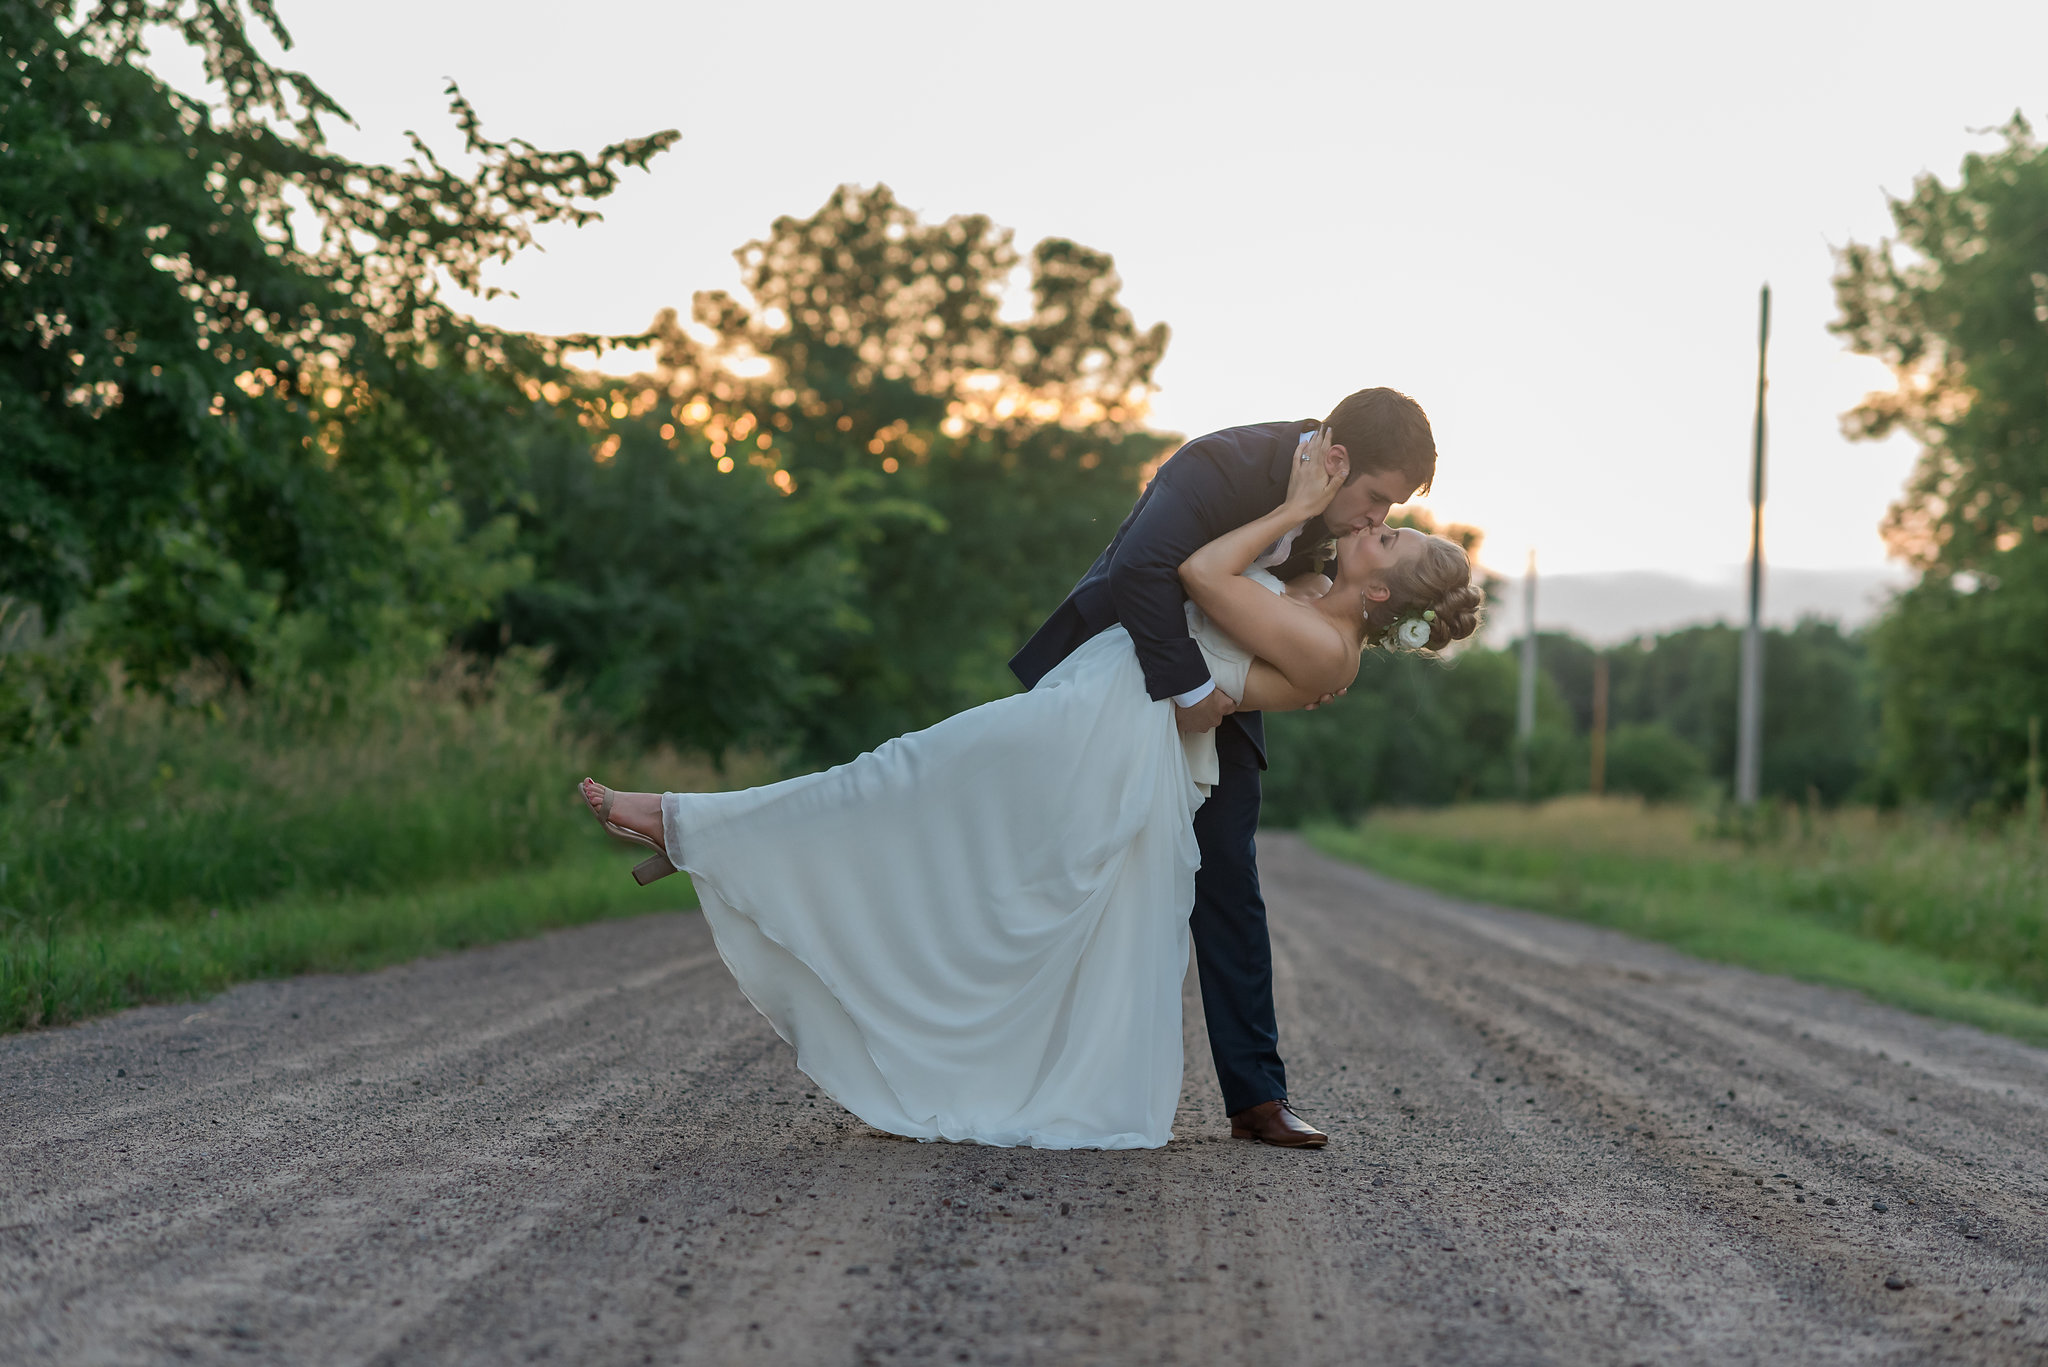 Carrie and Dave Married at Bloom Lake Barn // Kelly Birch Photography // dip kiss on a dirt road during golden hour // Sixpence Events // Minnesota barn wedding